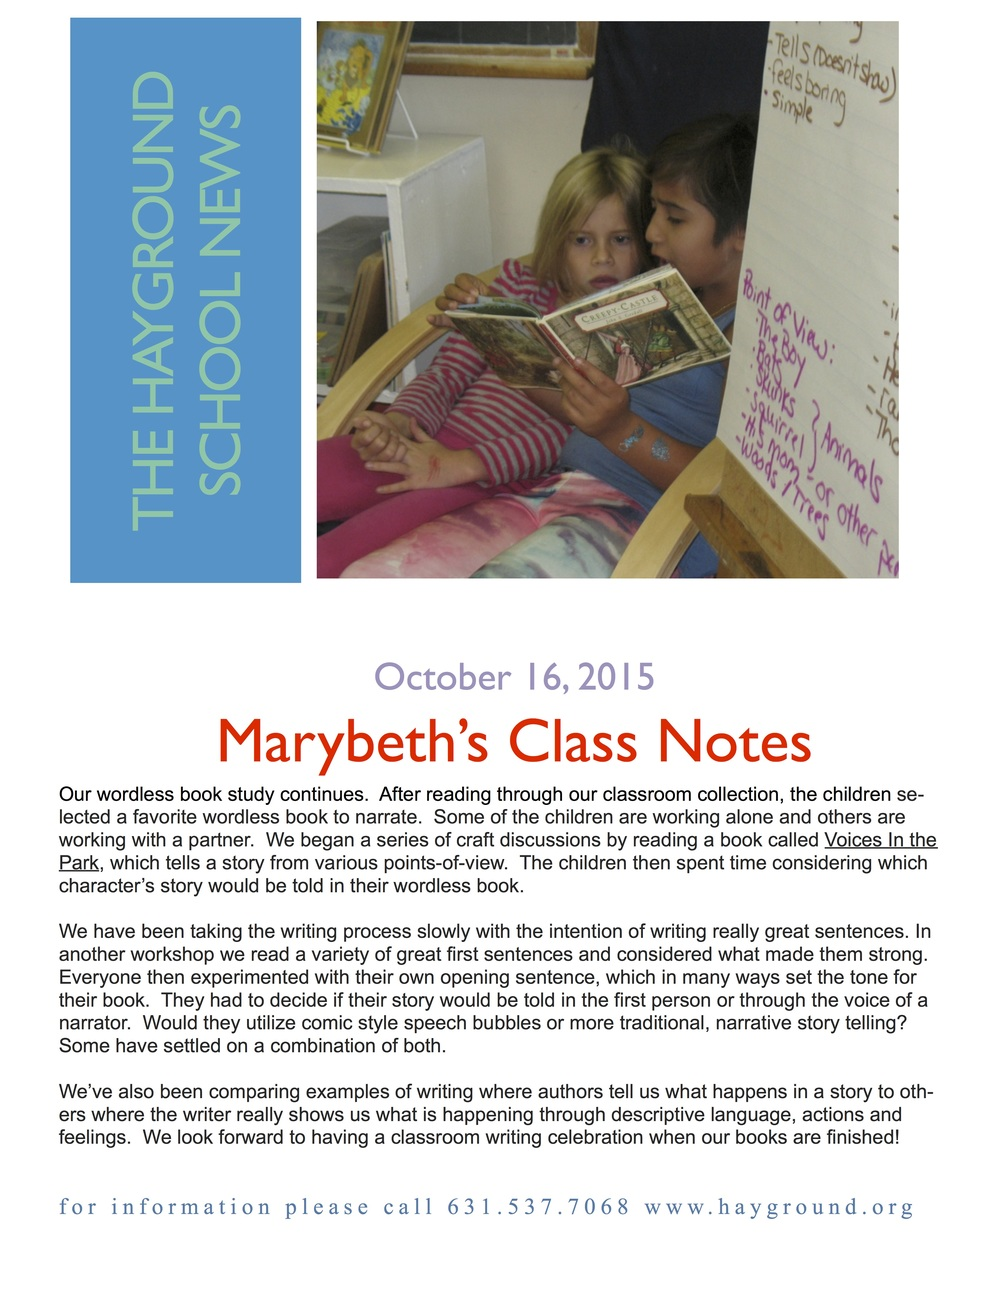 Class Notes 10-16-15 copy.jpg